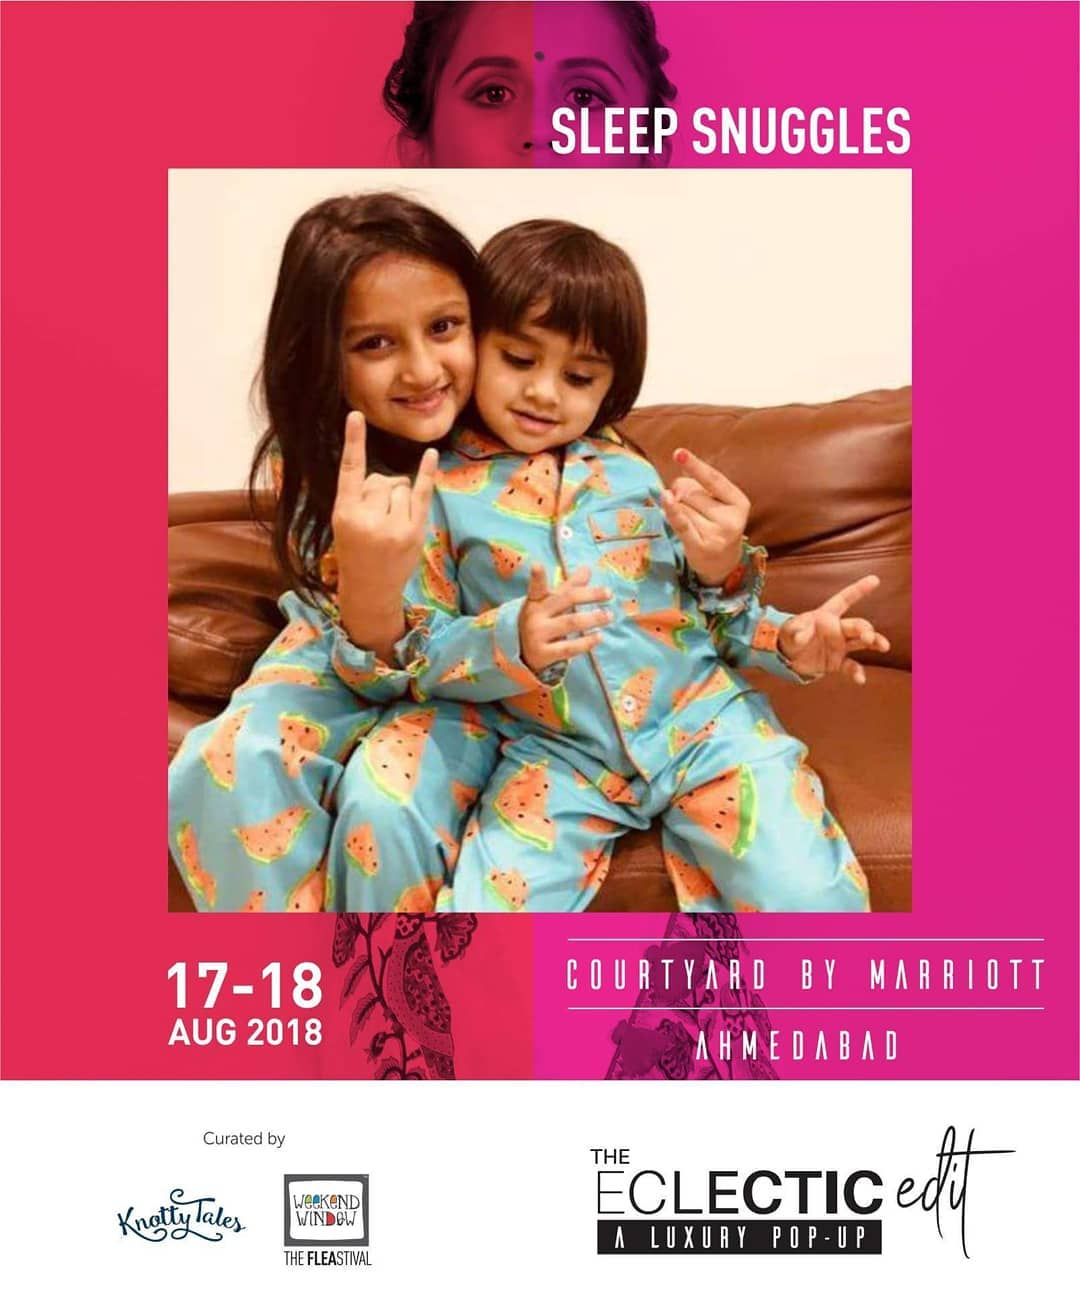 @sleepsnuggles  is a fine range of chic and snug sleepwear for women. Custom made to your fitting and preference.  Stop wearing that tattered old T-shirt to bed & explore their curated list of nightwear essentials at The Eclectic Edit - Season 3 curated by @knottytales_kt & @weekendwindow .  #newprints #sleepwear #cotton #comfy #mypajamaisbetterthanyours #pajamas #jamie #nightwear #rakhigift #personalise #sleepsnuggles #theeclecticedit #knottytales #weekendwindow #popup